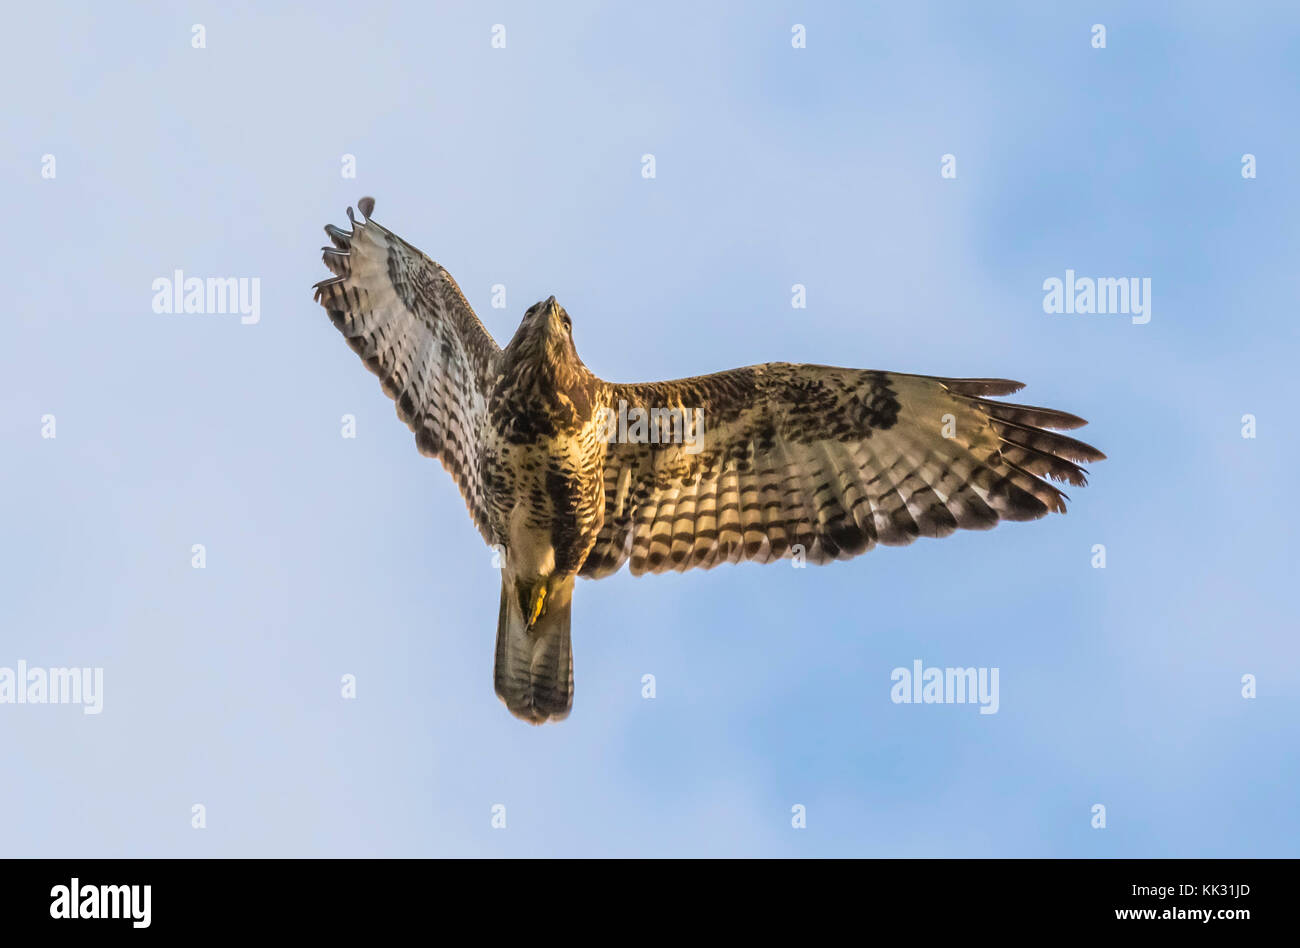 Common Buzzard (Buteo buteo) flying in Autumn in Arundel, West Sussex, England, UK. - Stock Image